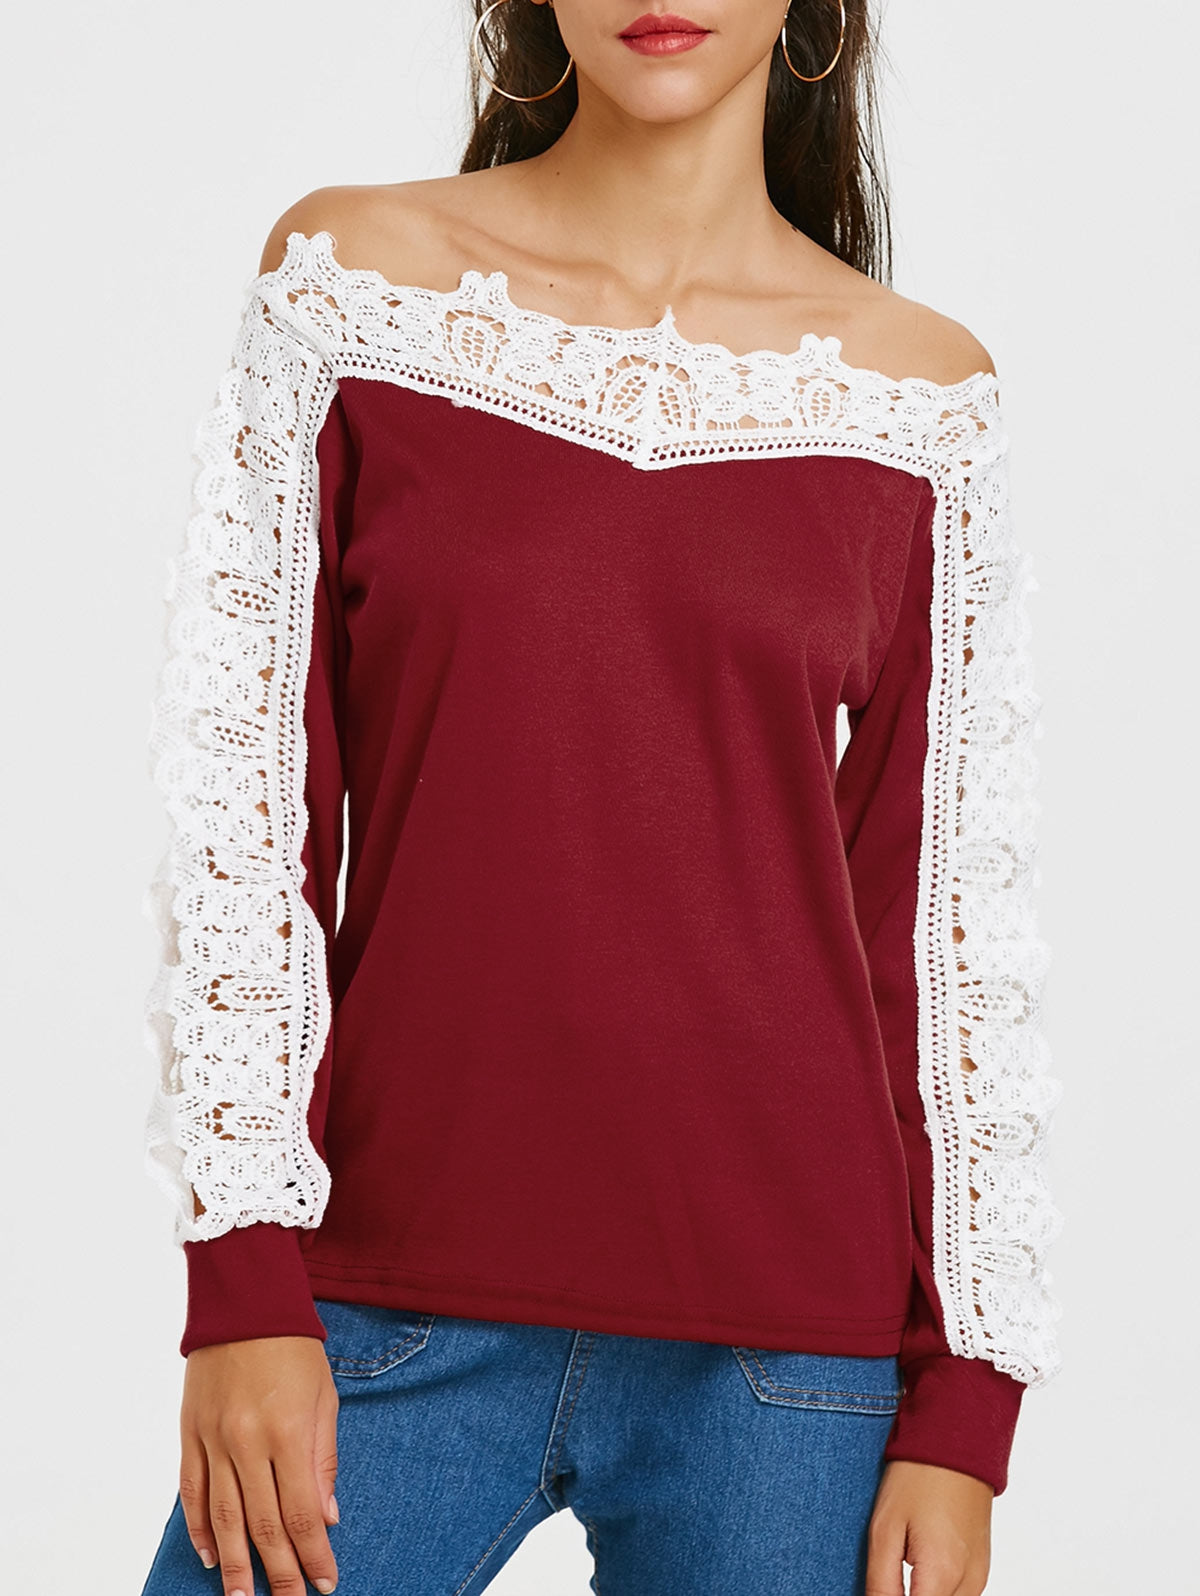 Long Sleeve Openwork Lace Insert T-shirt 5214